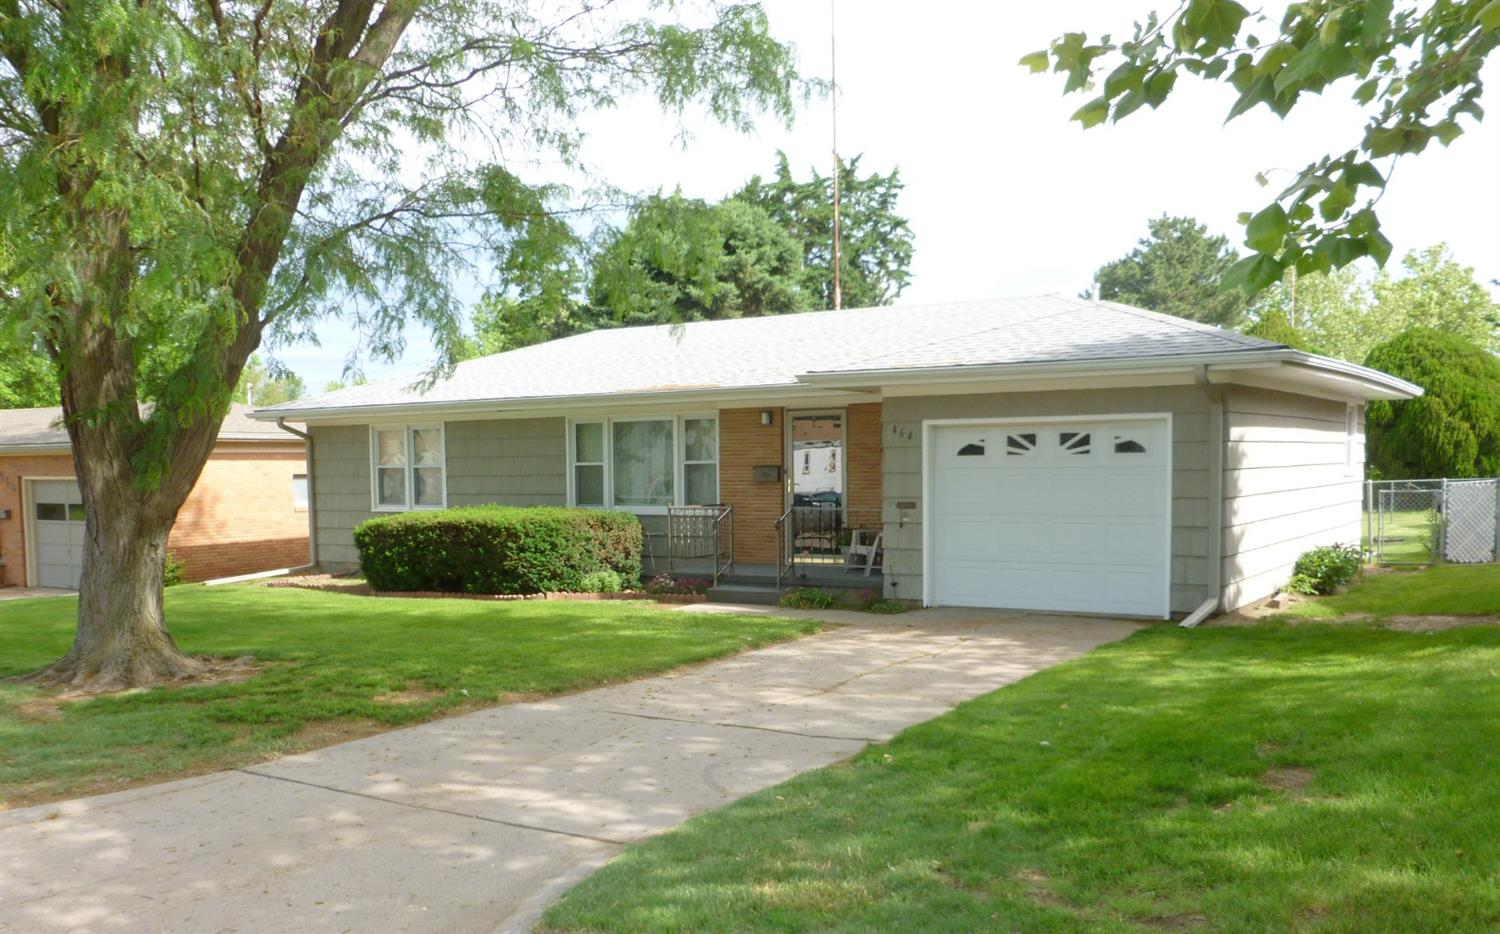 Cute 3 bedroom, 1 bath home in great Hoisington neighborhood. This home would be perfect for a first time home buyer or for someone who wants all the necessities accessible on the main floor. It has great curb appeal, boasts hardwood floors, a great backyard, plenty of shade and a 1 car garage.